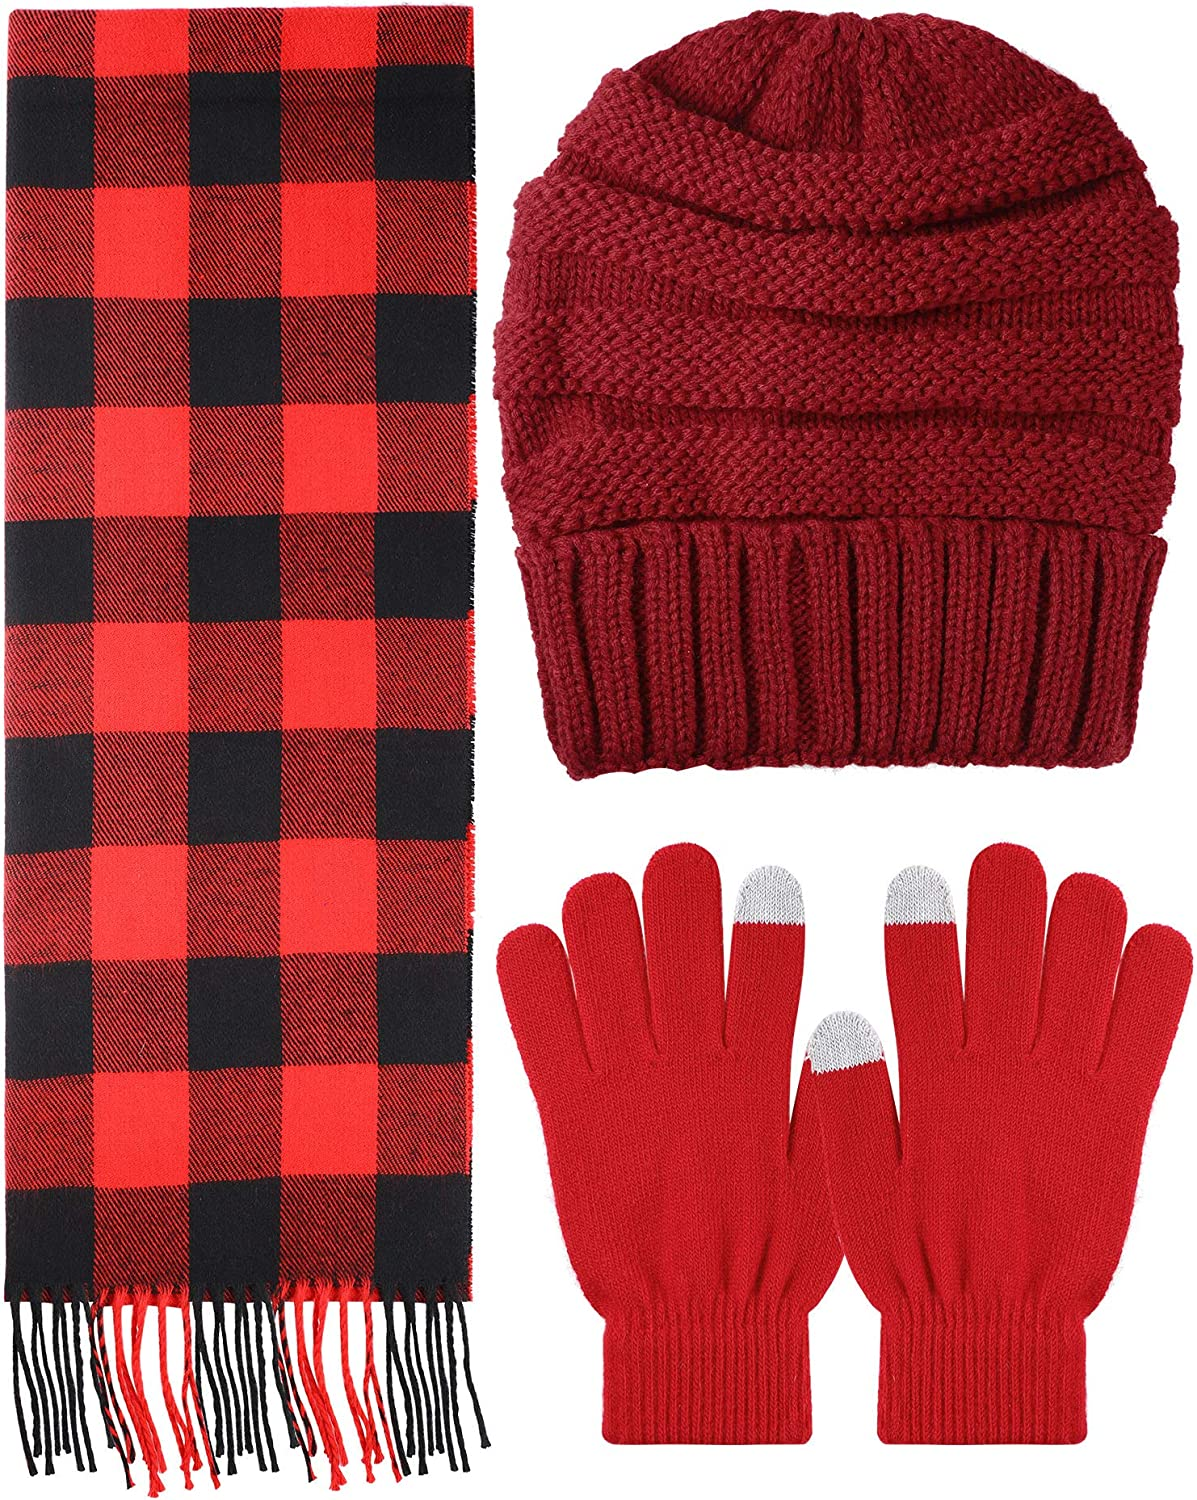 Christmas Winter Warm Set Knitted Beanie Gloves Challenge the lowest price of Japan ☆ and Hat Soft Fashion Sca